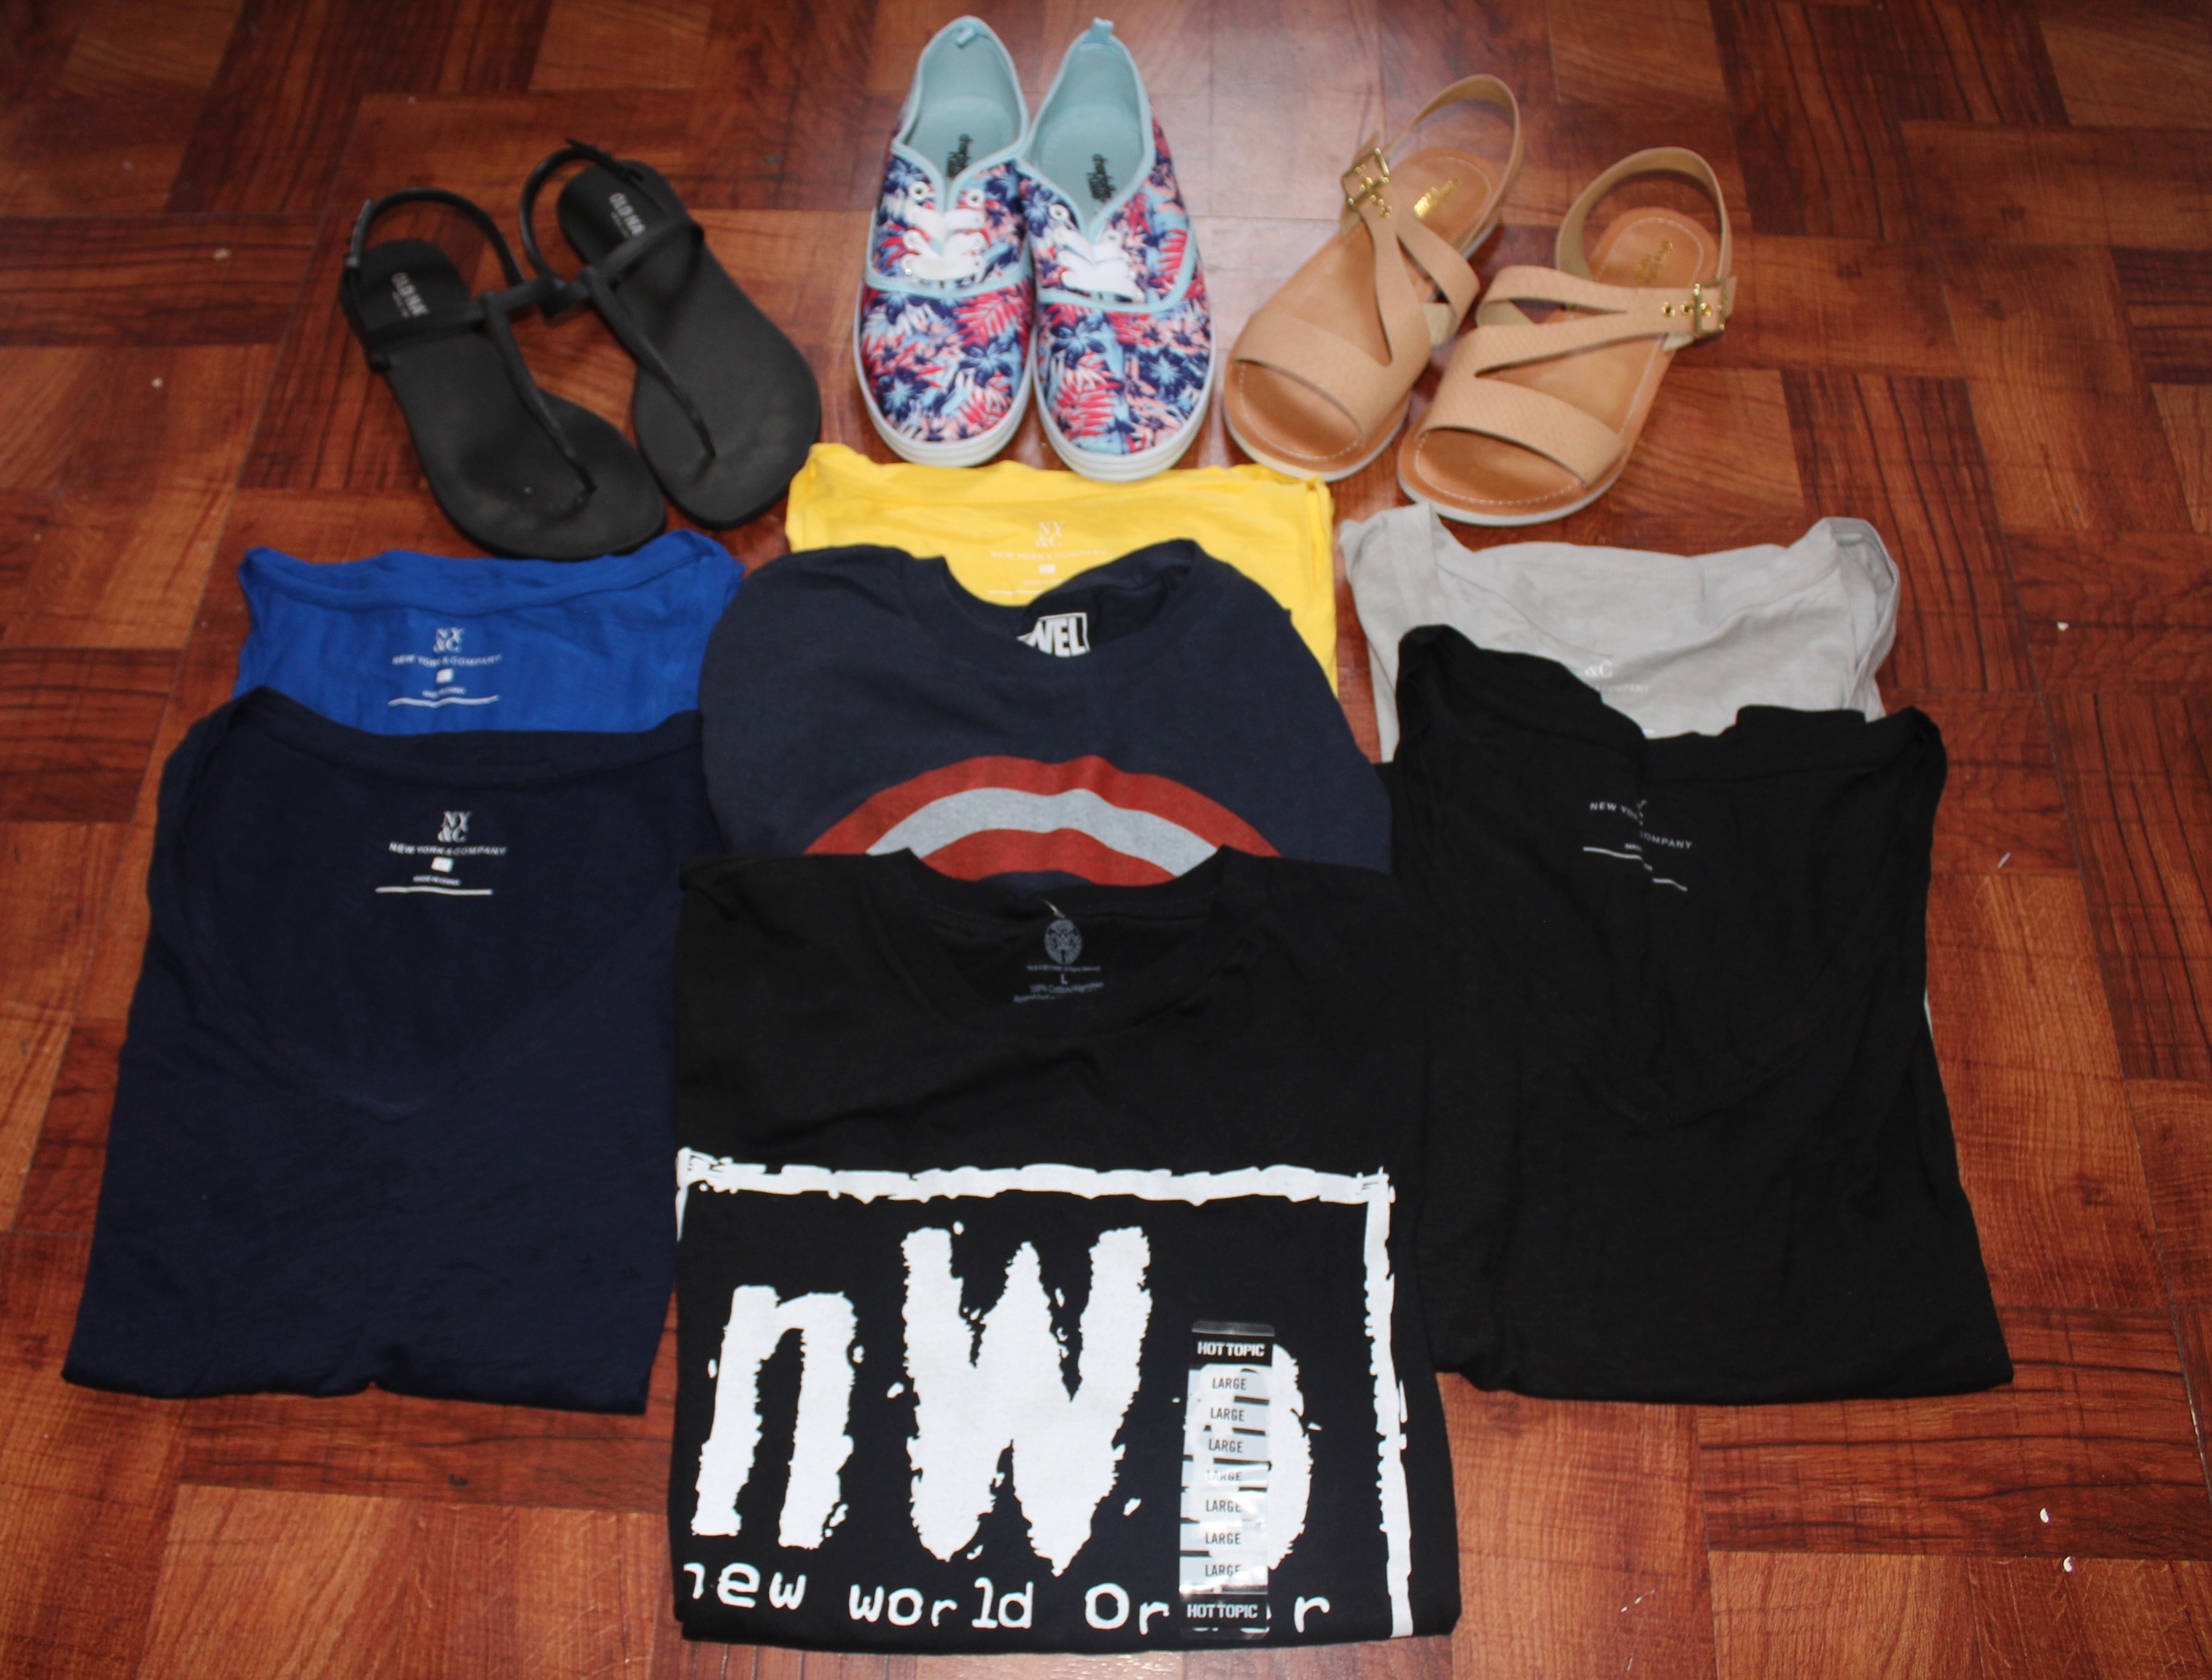 Black sandals old navy - Black Sandals Old Navy Nude Sandals Charlotte Russe Sneakers Charlotte Russe Basic Tanks